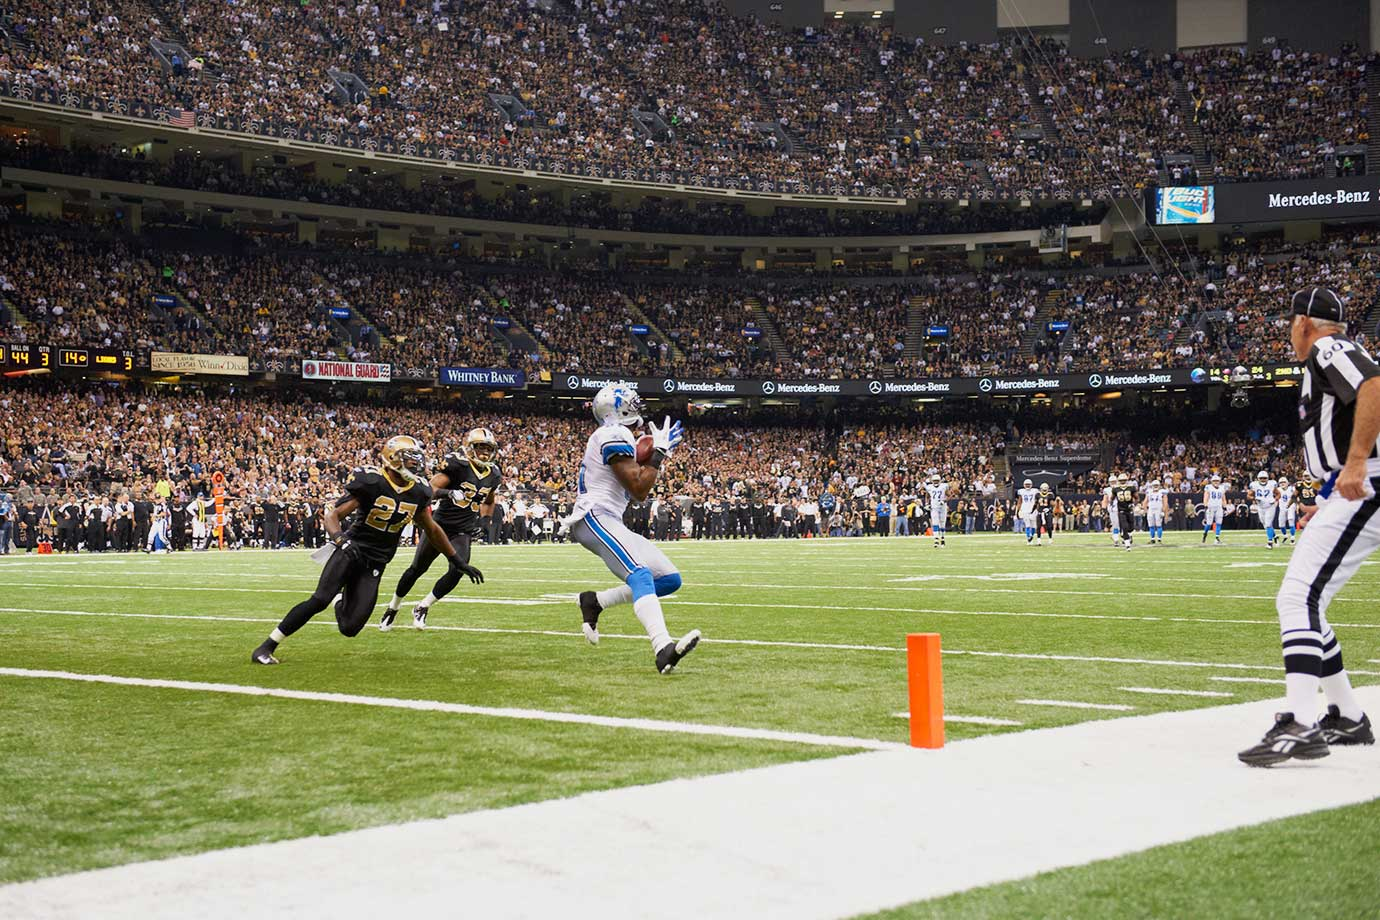 Jan. 7, 2012 (NFC Wild Card Playoffs) — Detroit Lions vs. New Orleans Saints